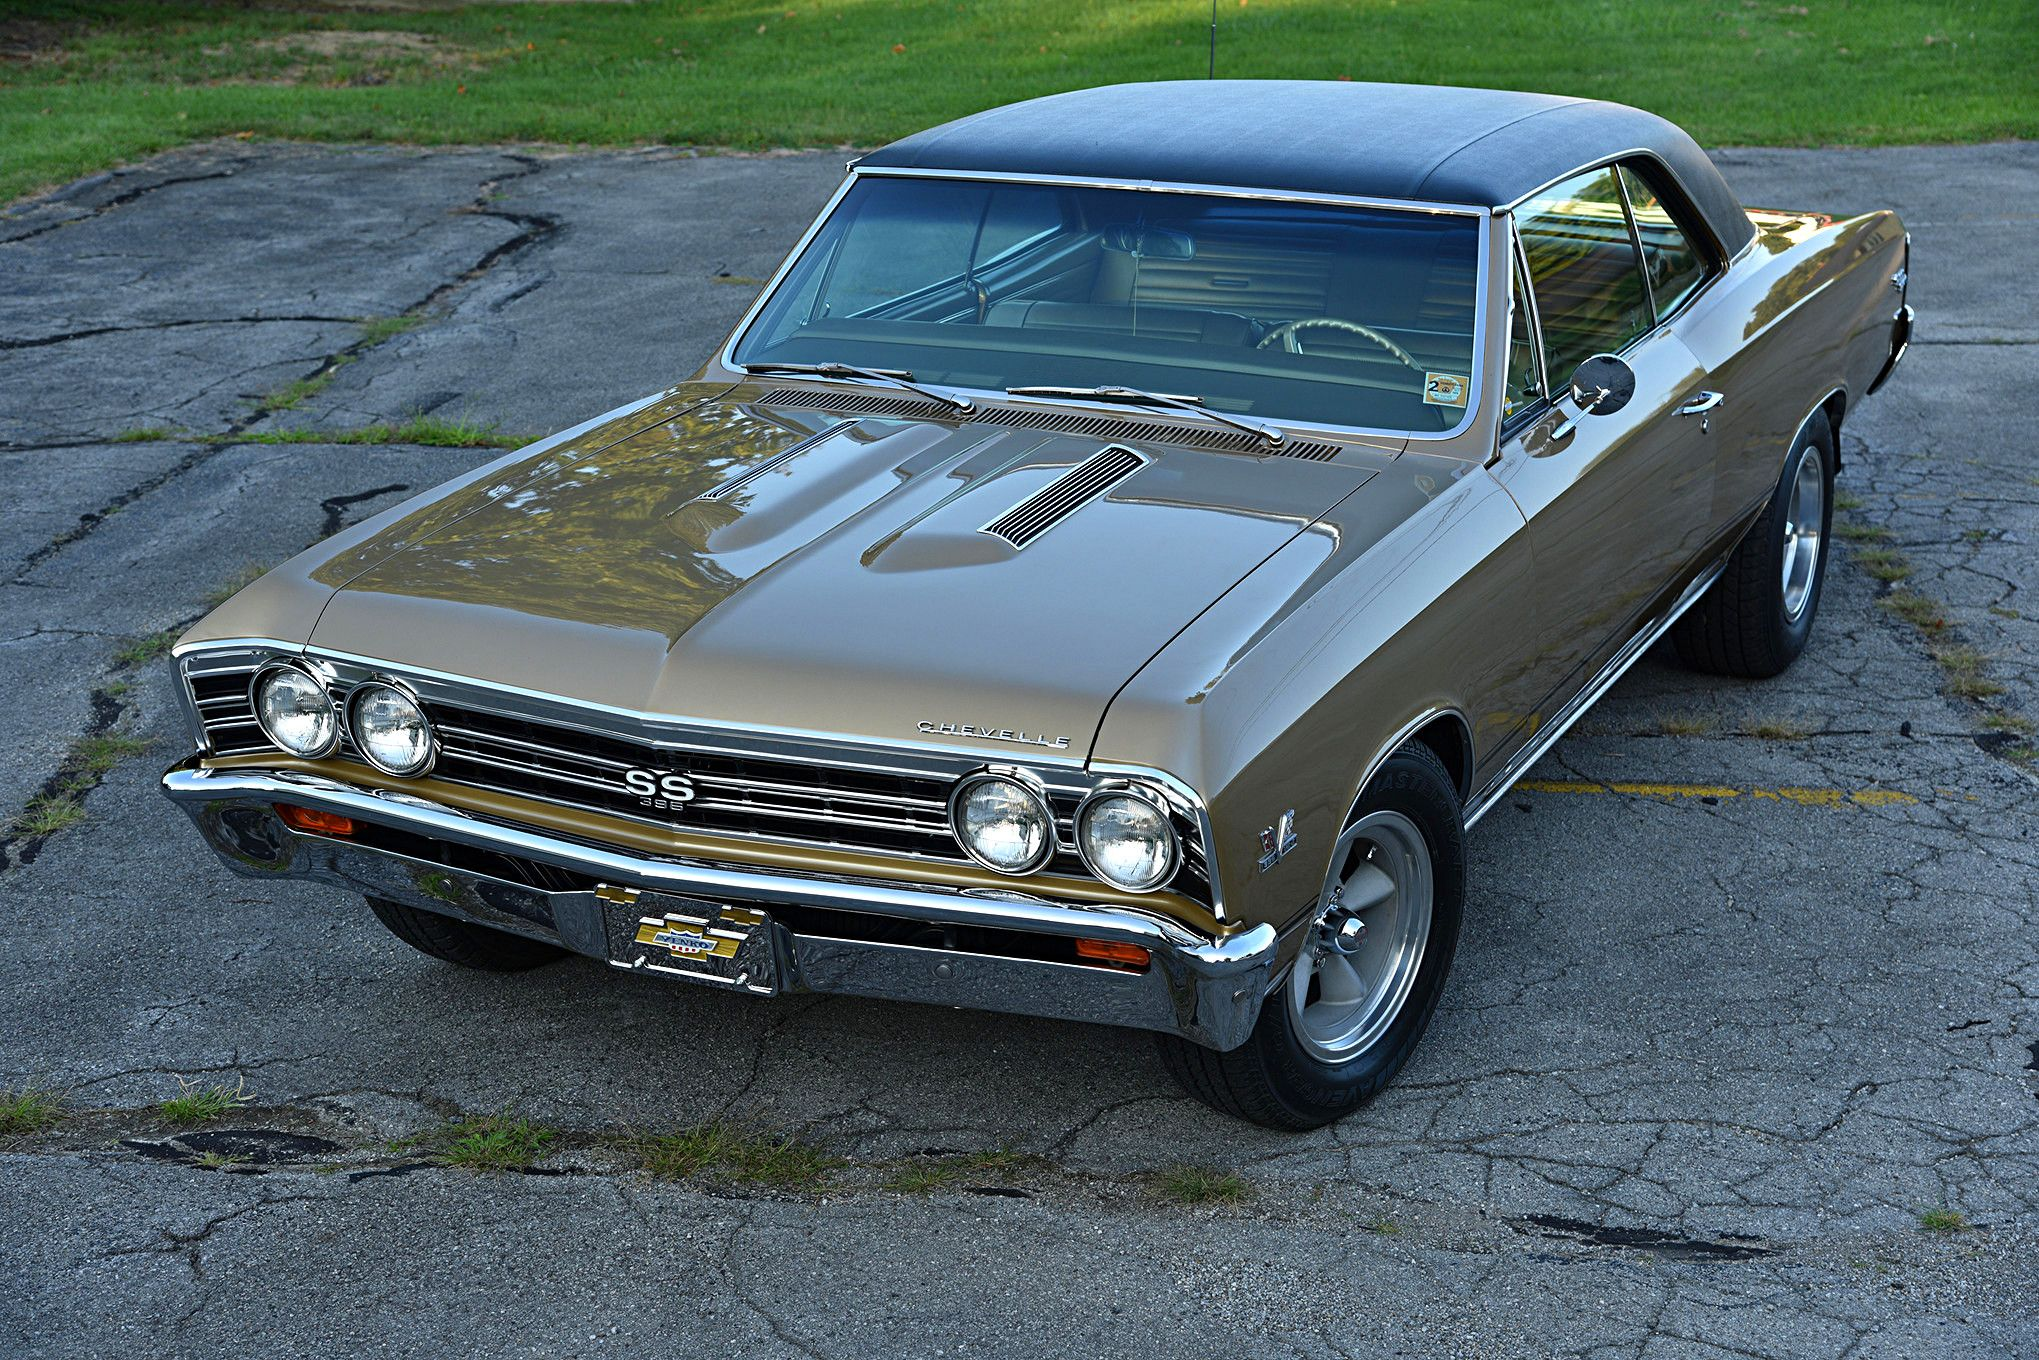 1967 Chevrolet Chevelle Ss396 L34 396 350hp 3bbl Bbc M20 Wide Ratio 4speed W Line Lock G80 3 73 12bolt Chevrolet Chevelle Chevrolet Chevelle Malibu Chevelle